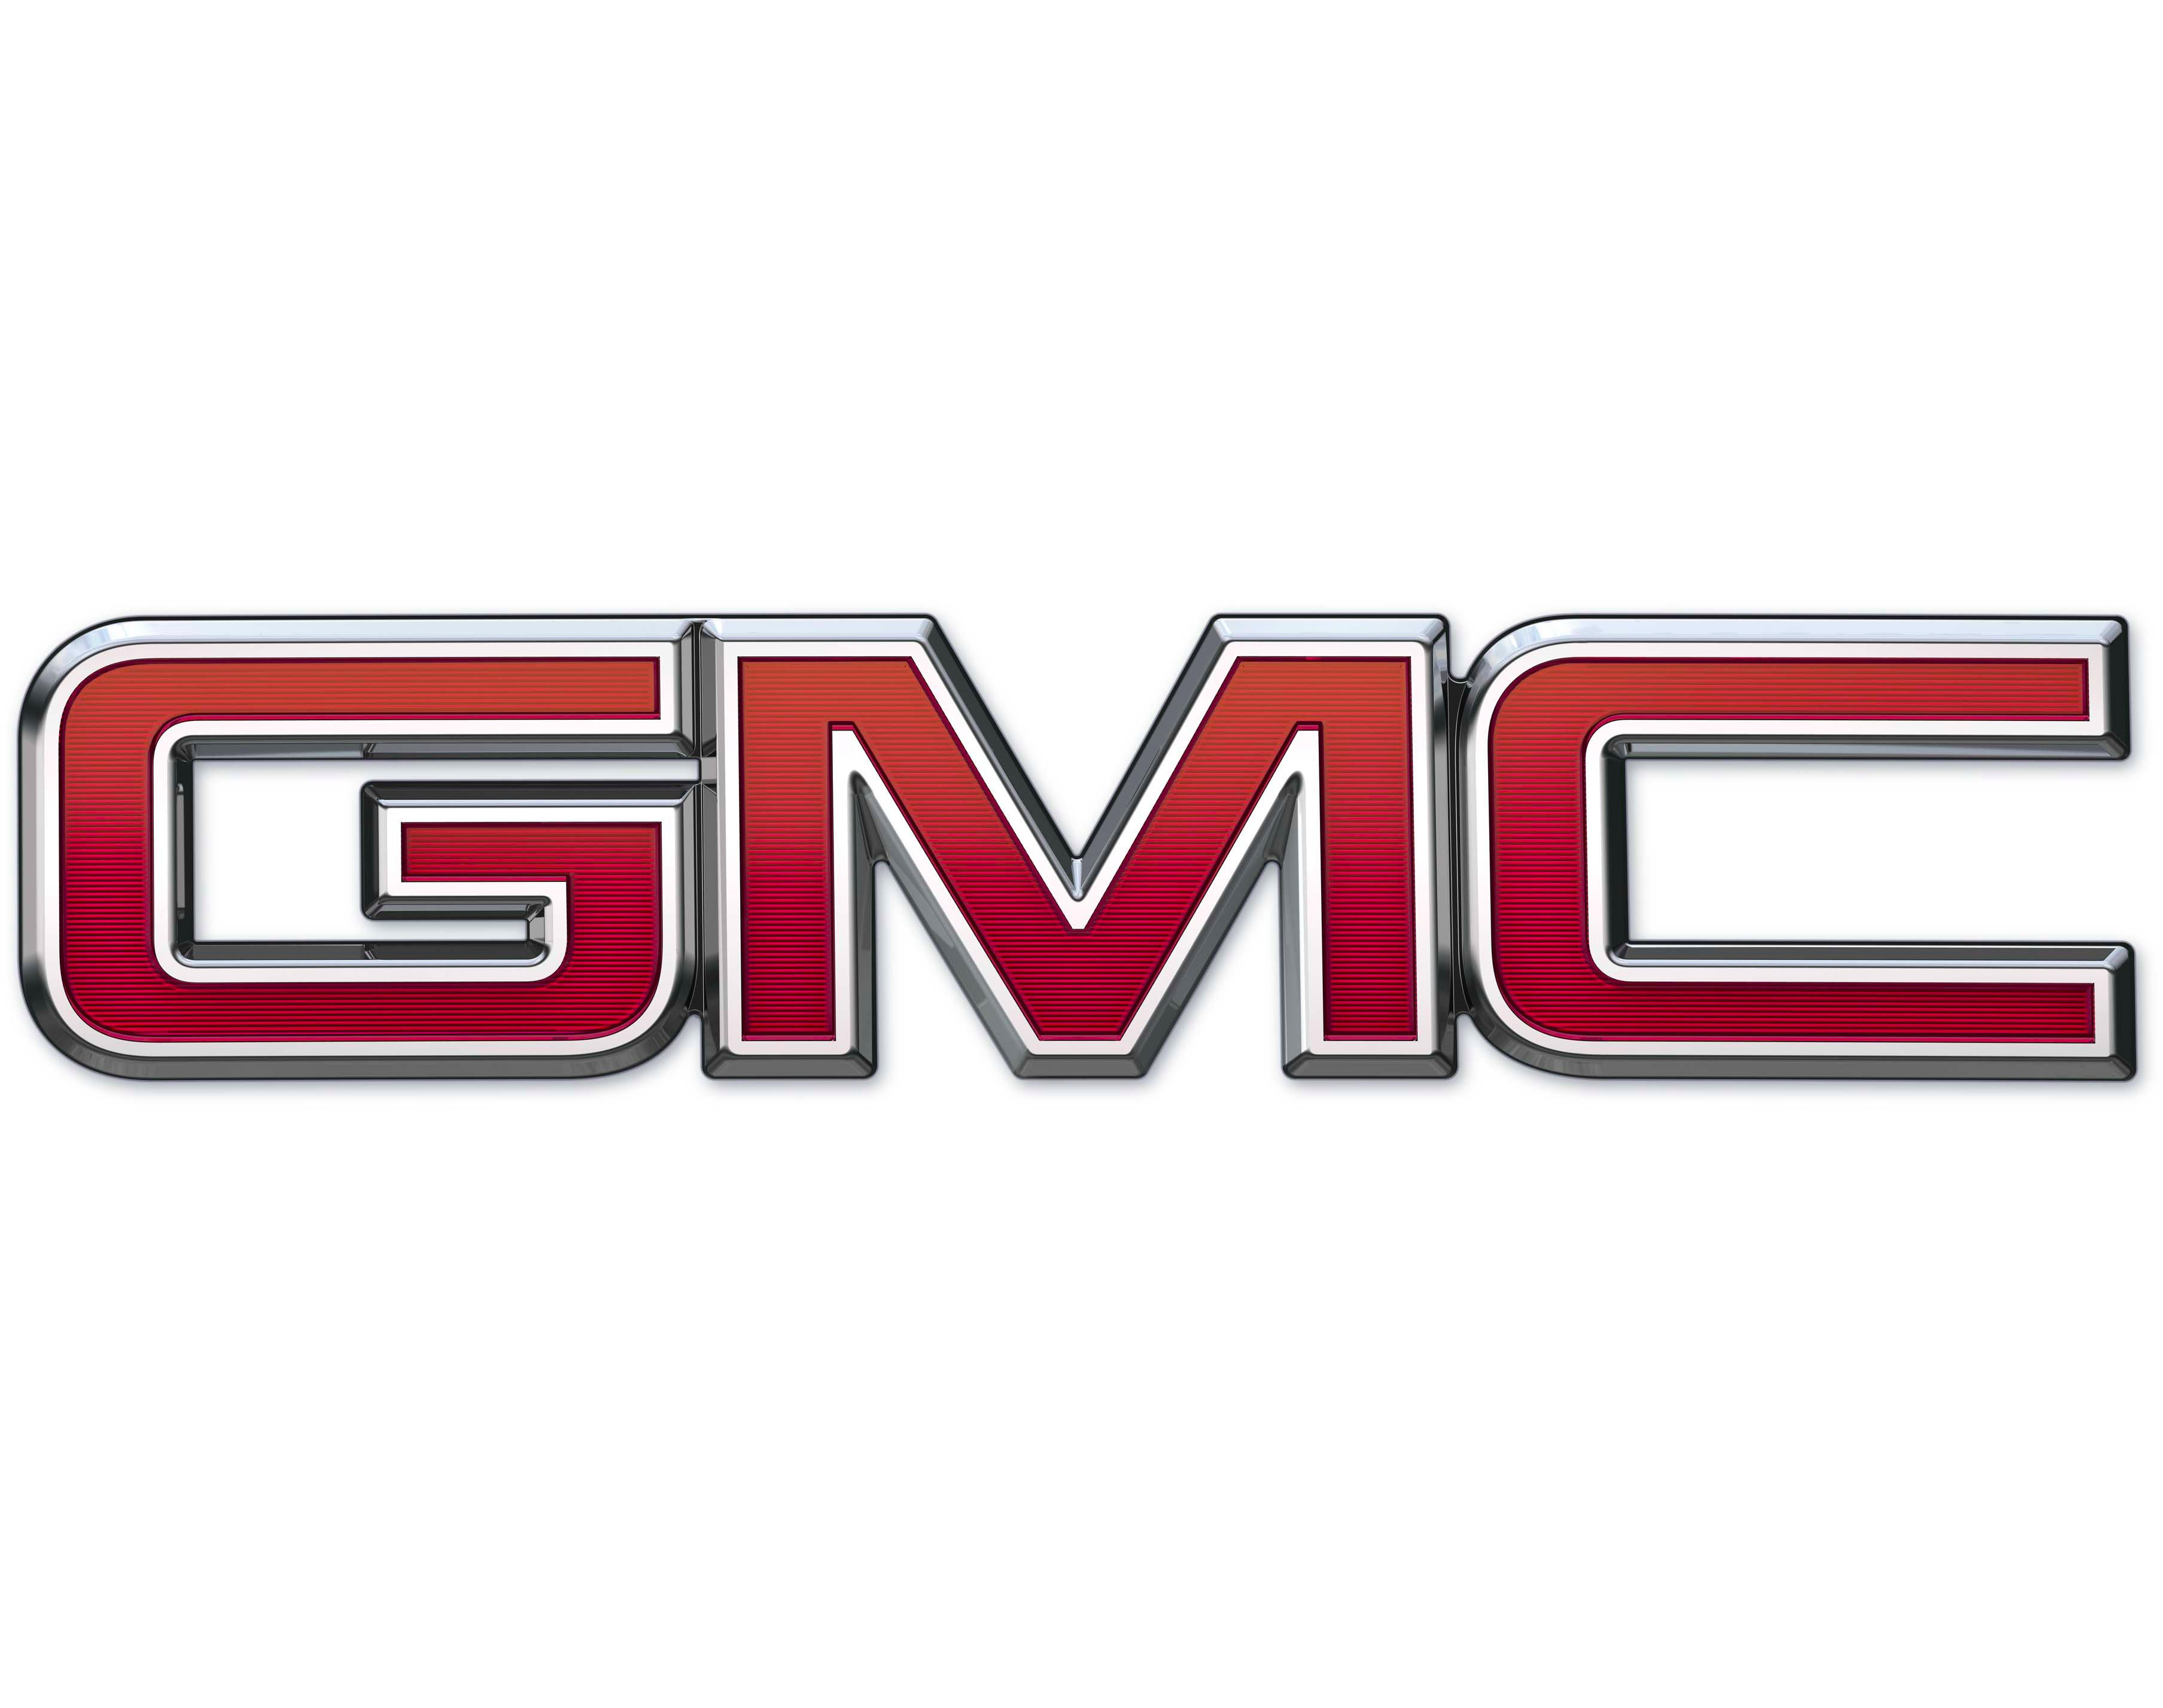 Gmc logo gmc car symbol meaning and history car brand names gmc symbol buycottarizona Images